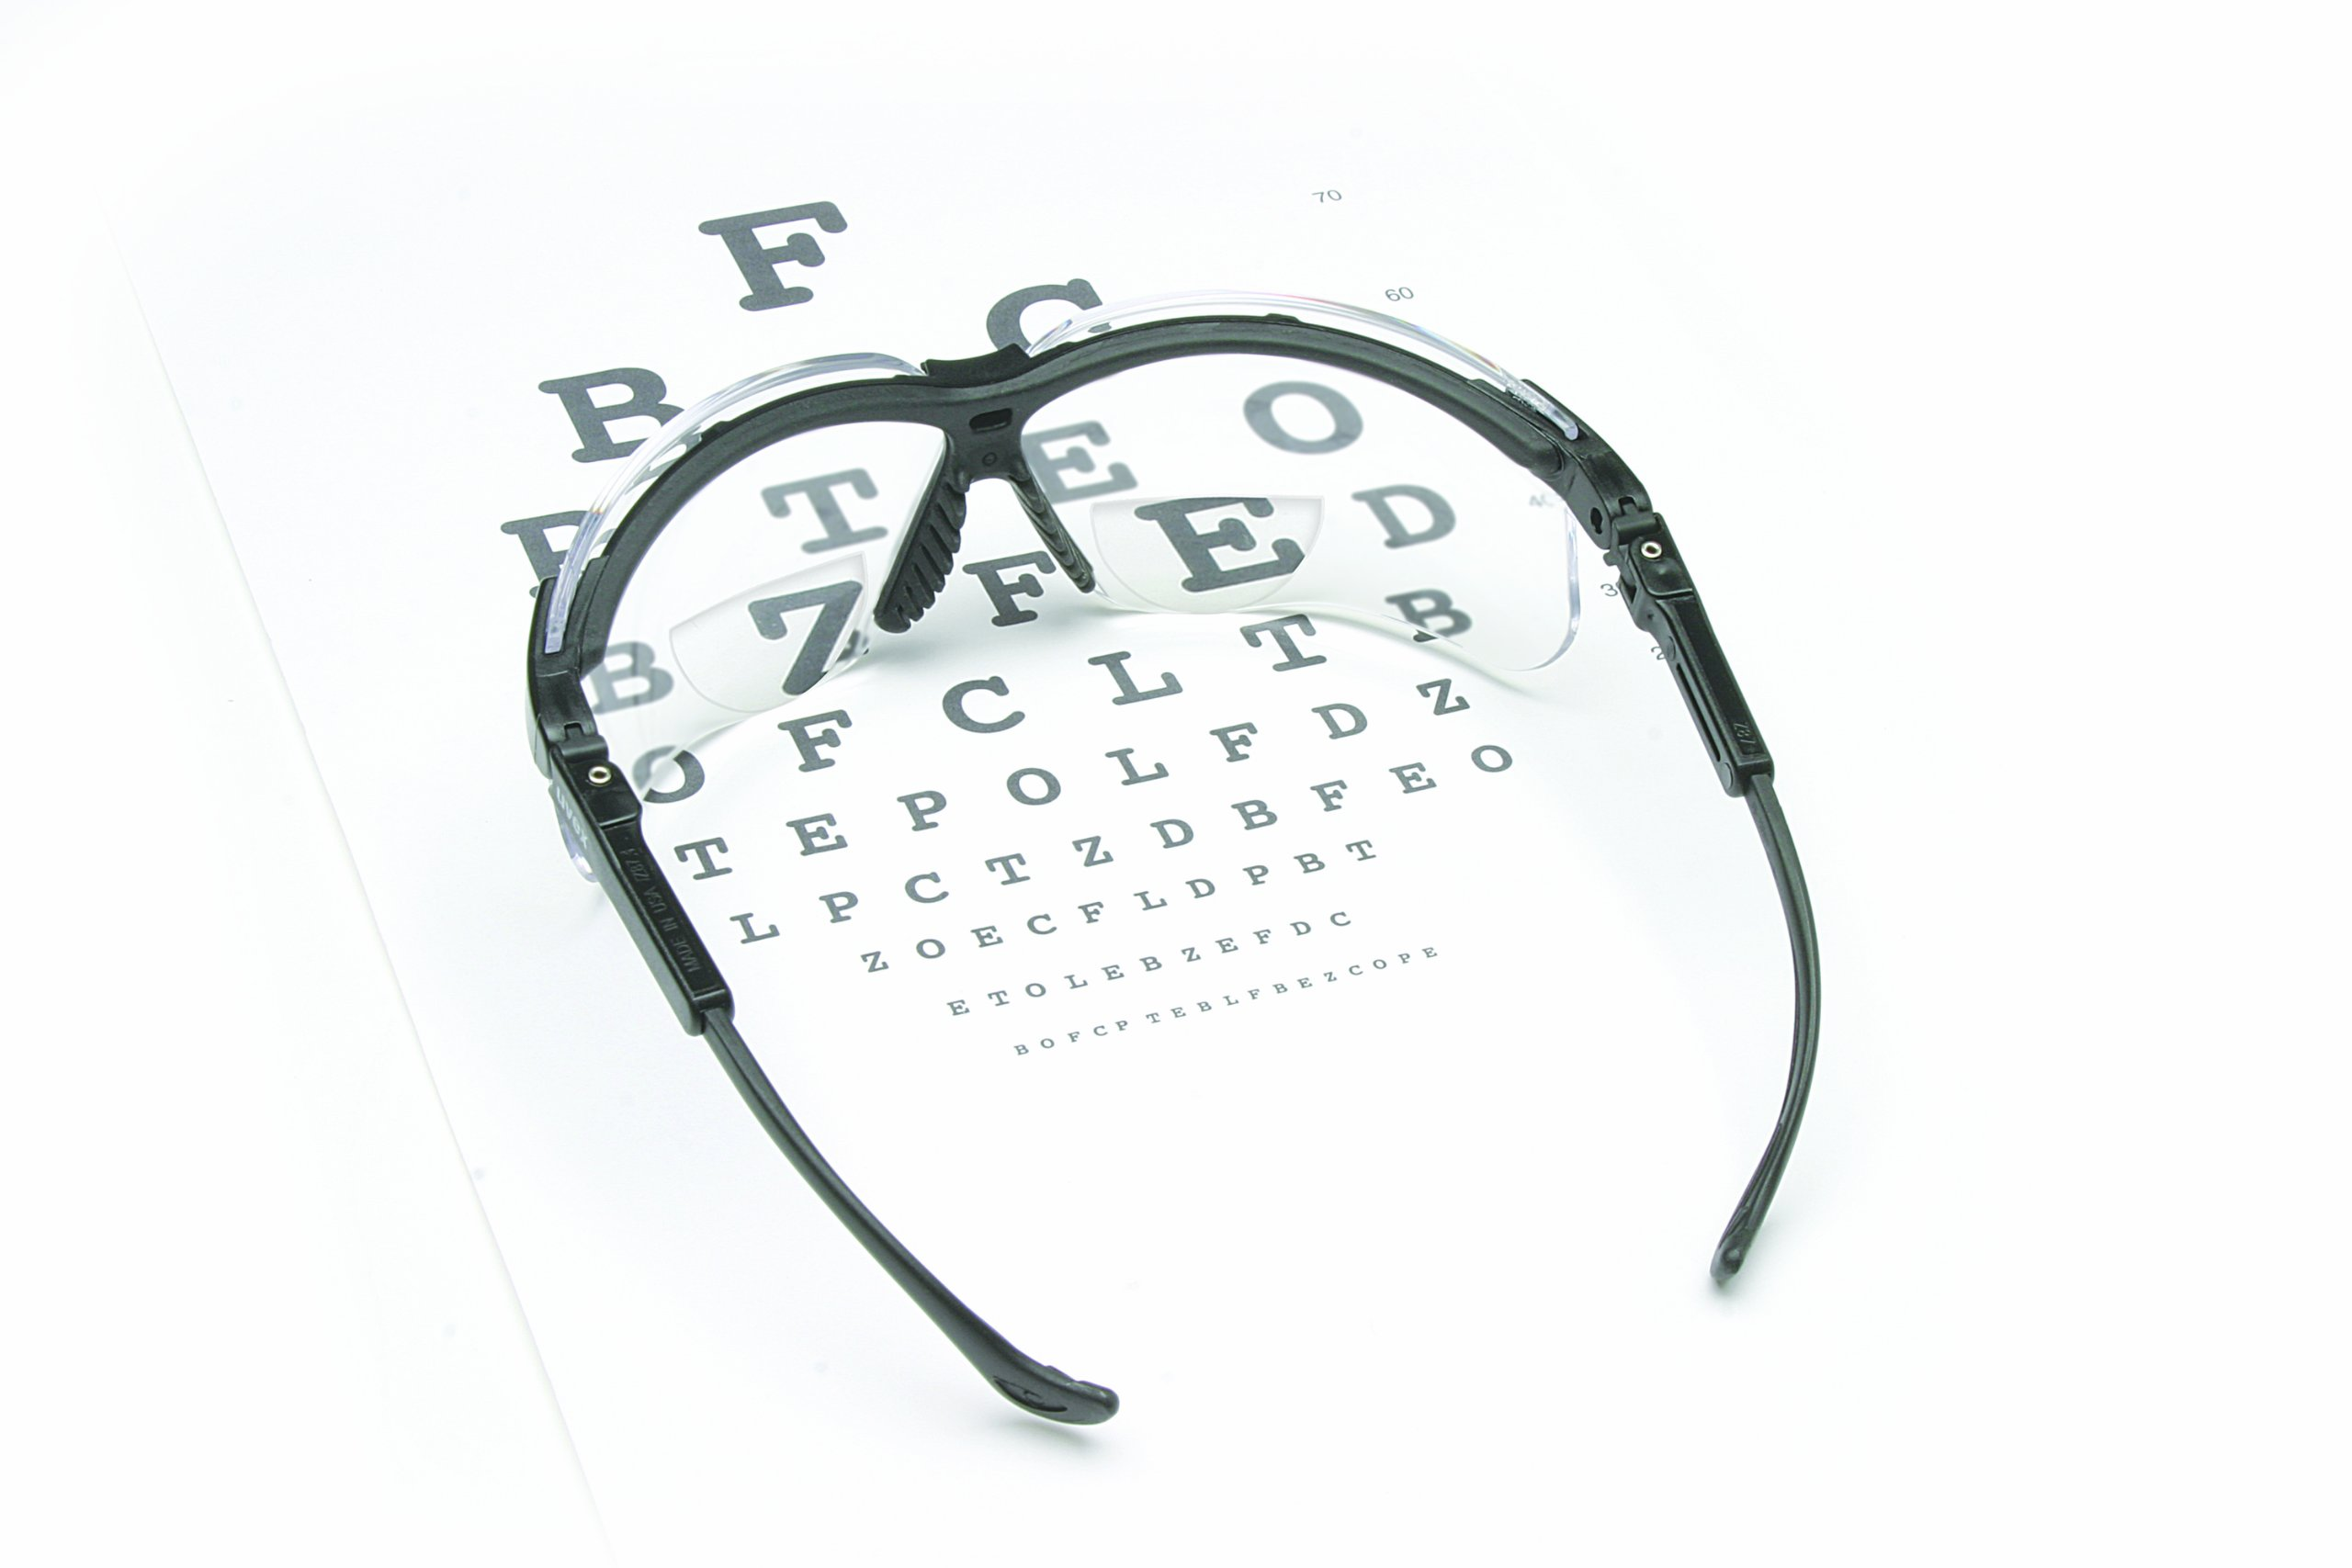 Uvex S3761 Genesis Reading Magnifiers Safety Eyewear +1-1/2, Black Frame, Clear Ultra-Dura Hardcoat Lens by Uvex (Image #2)